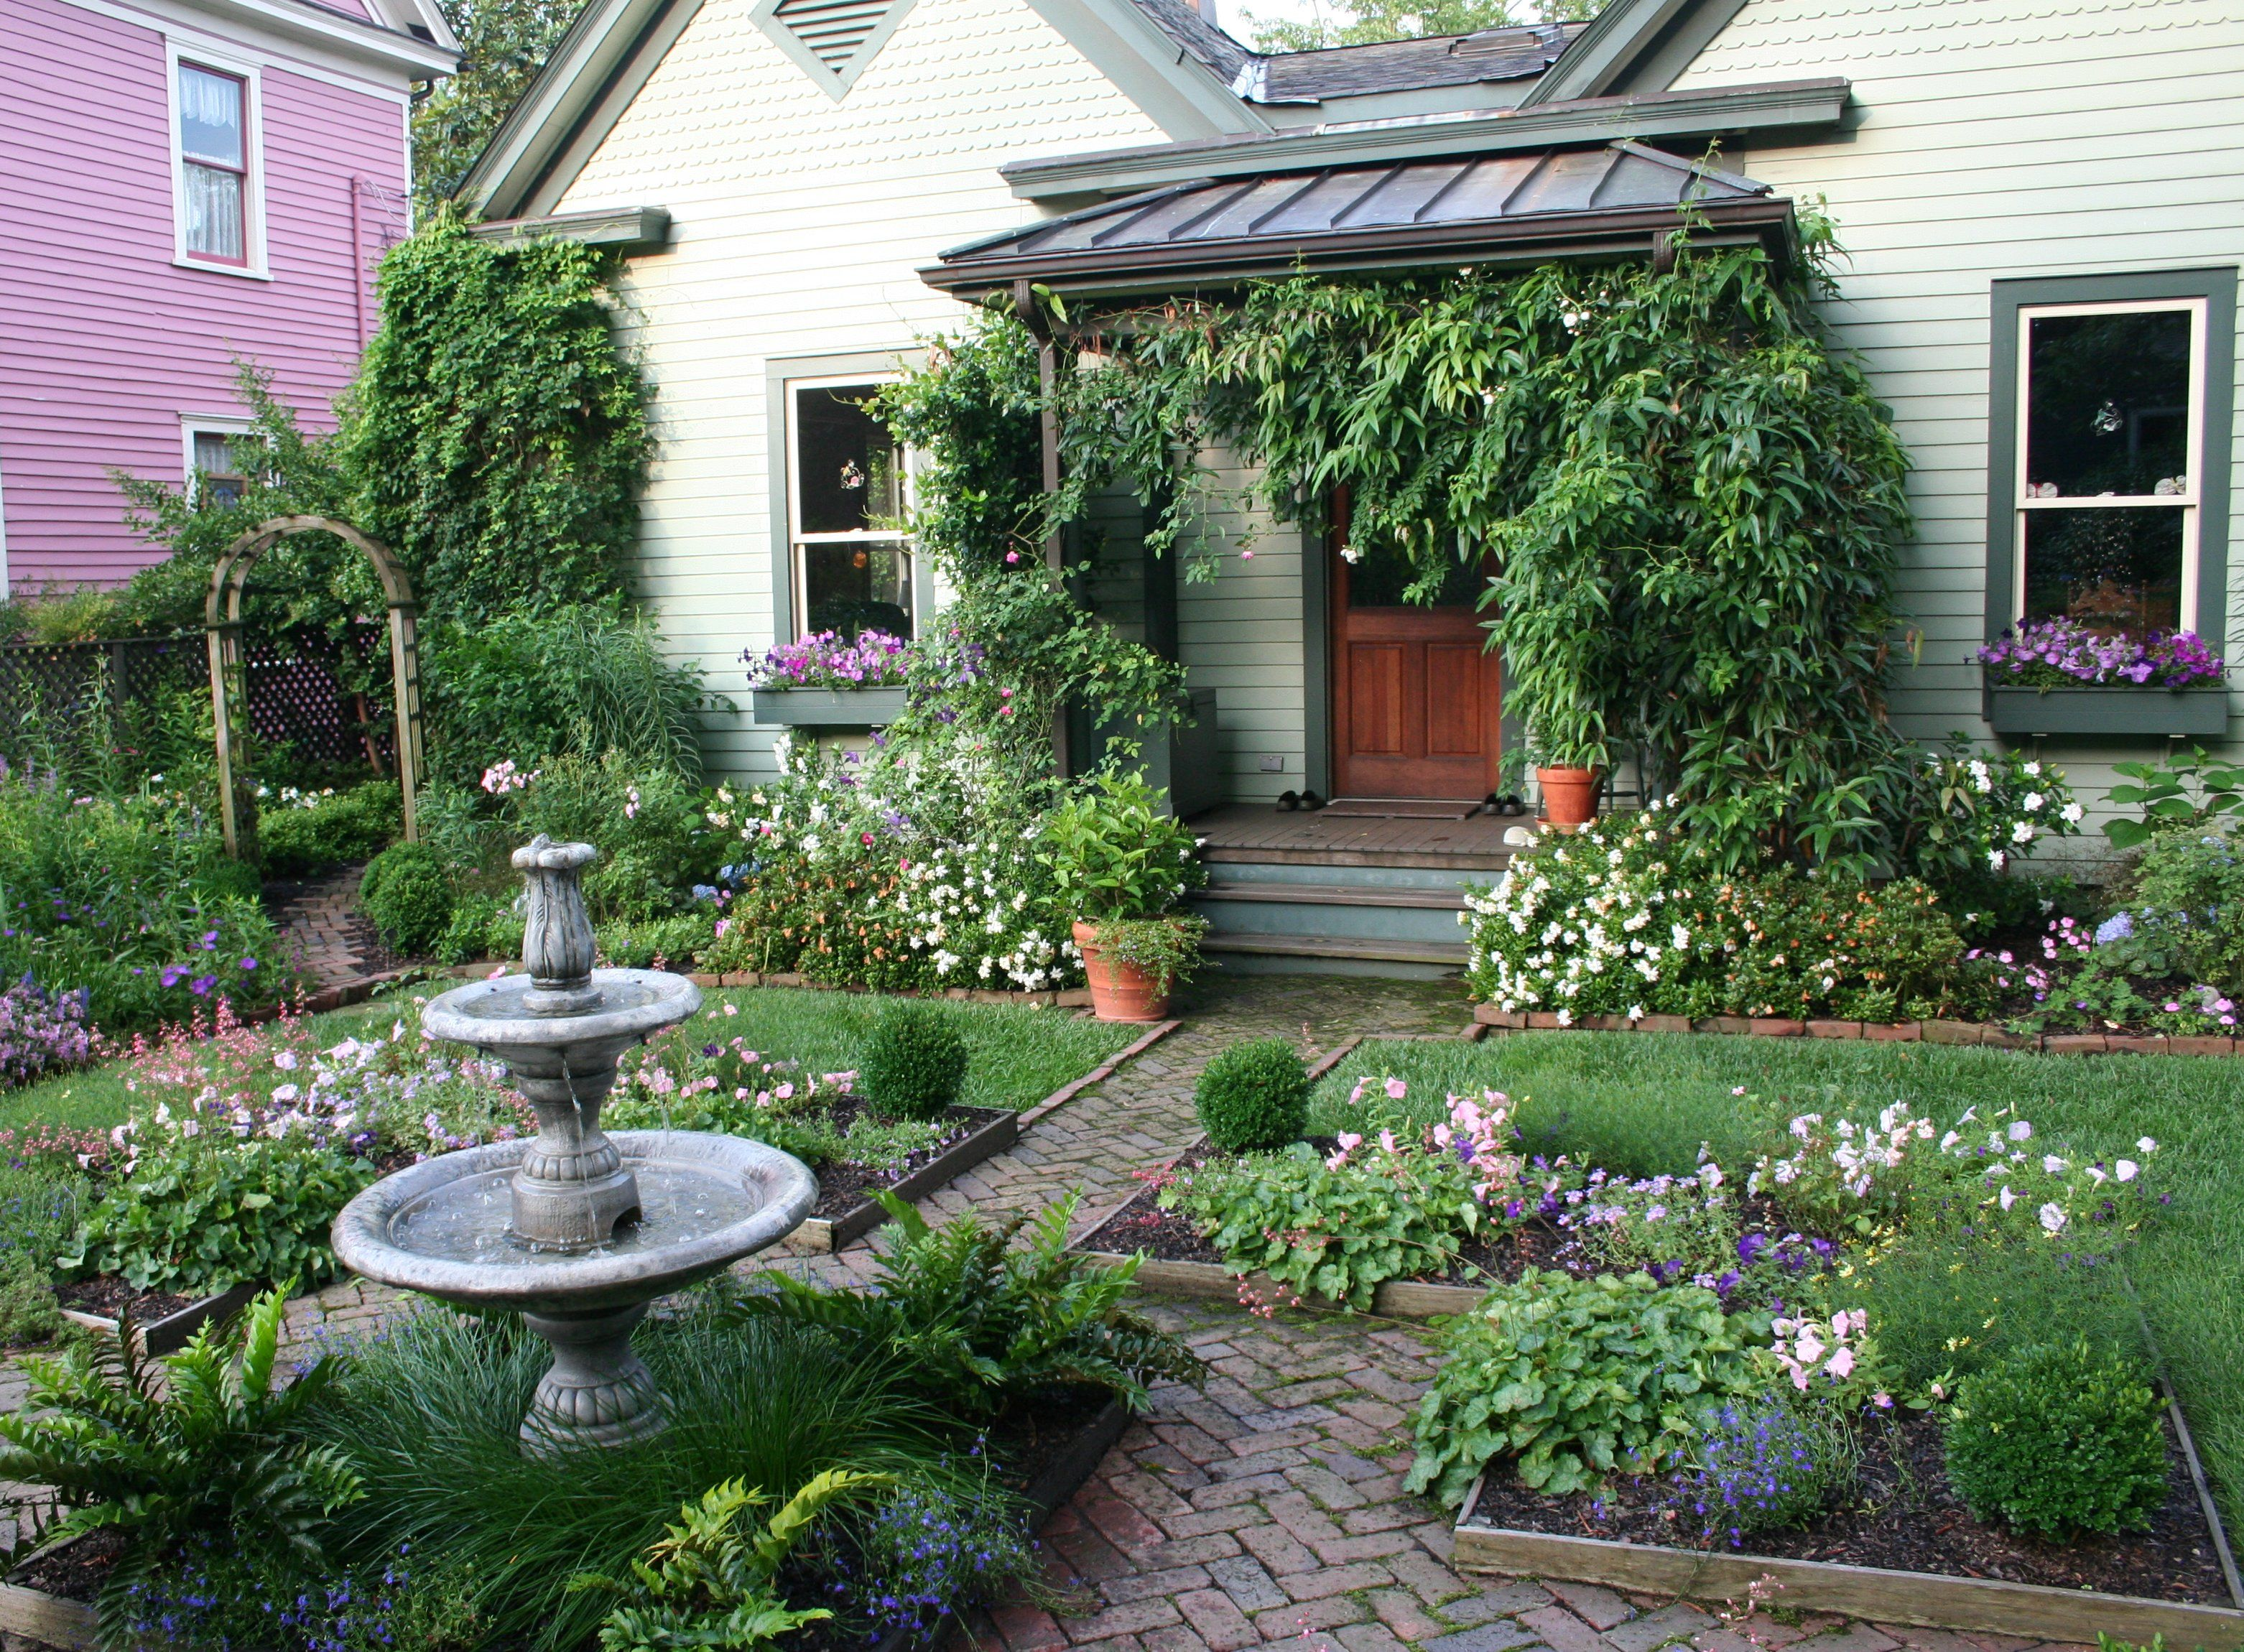 Cottage landscaping ideas | Cottage Garden Gardening with ... on Bungalow Backyard Ideas id=72855